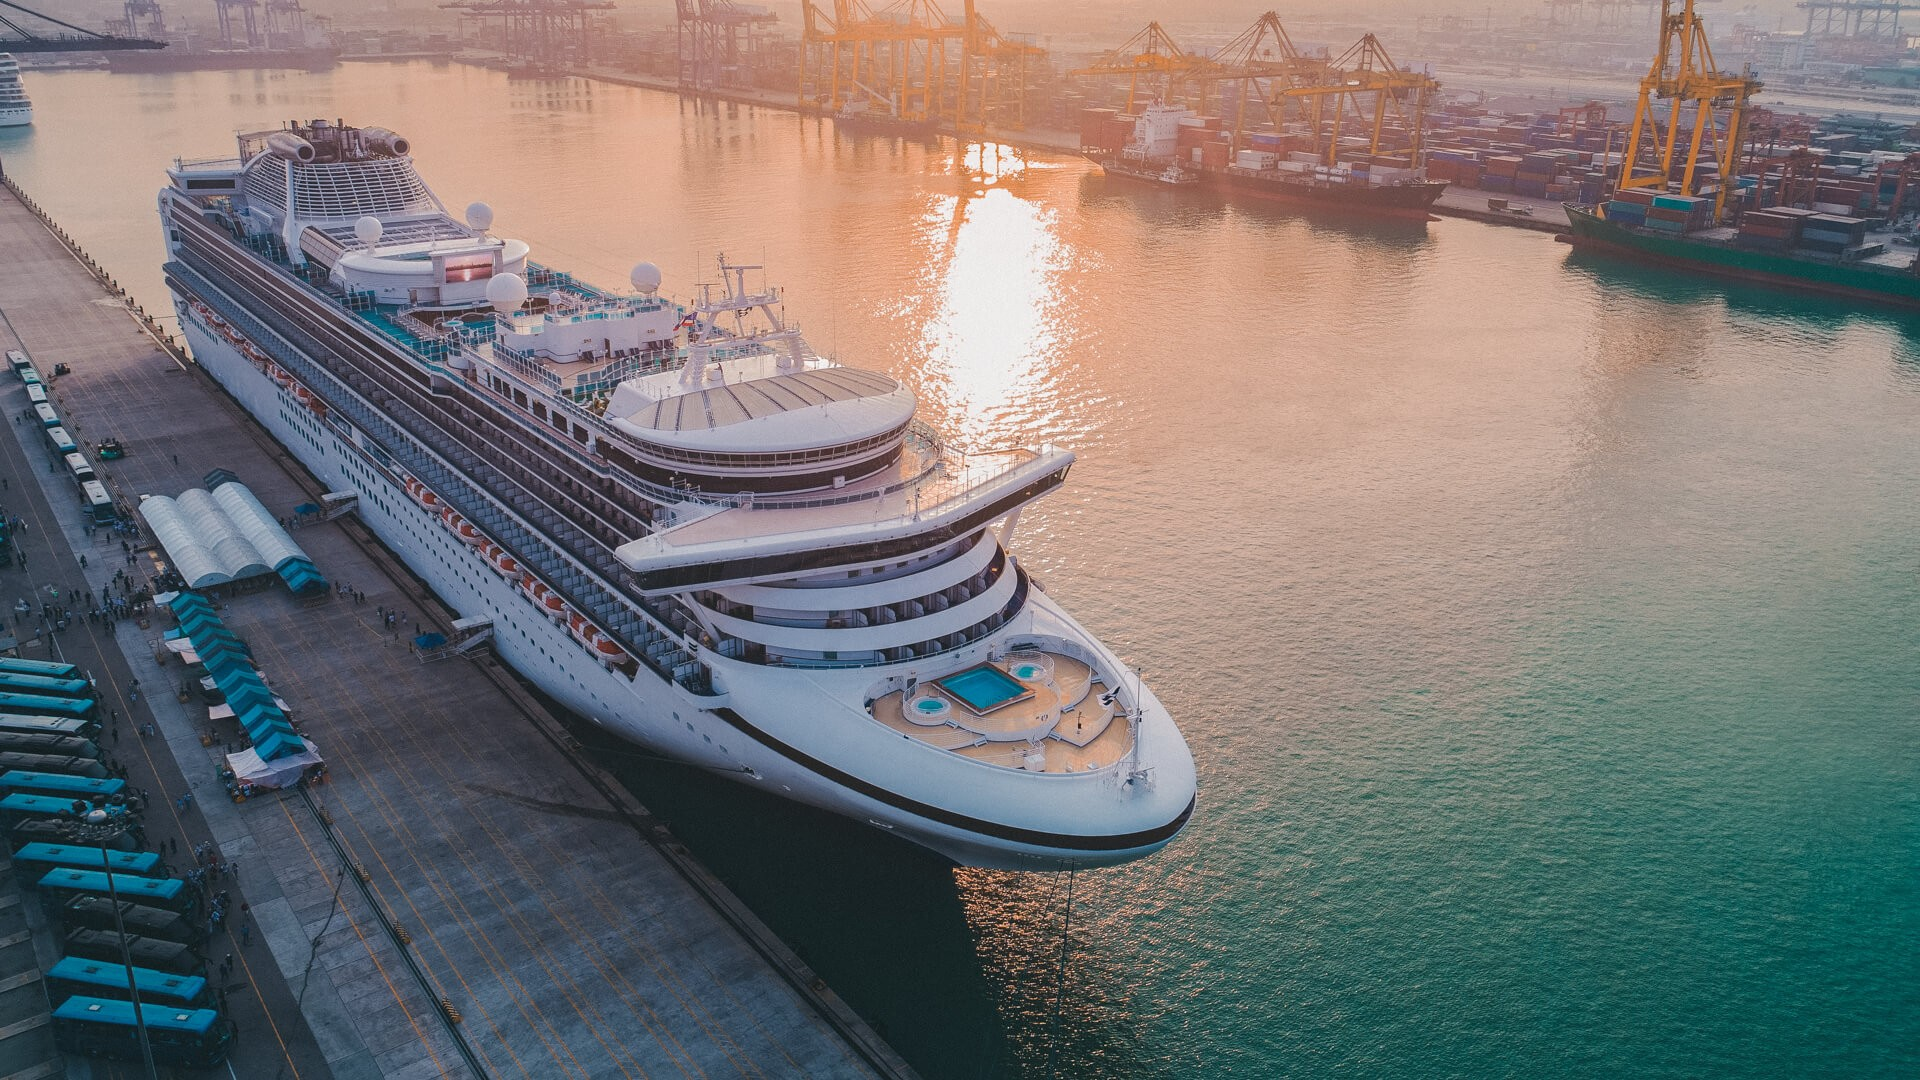 Cruise passengers ship berthing in the port services to the passenger sailing to destination port, restriction quarantine healthcare to all berthing ports.